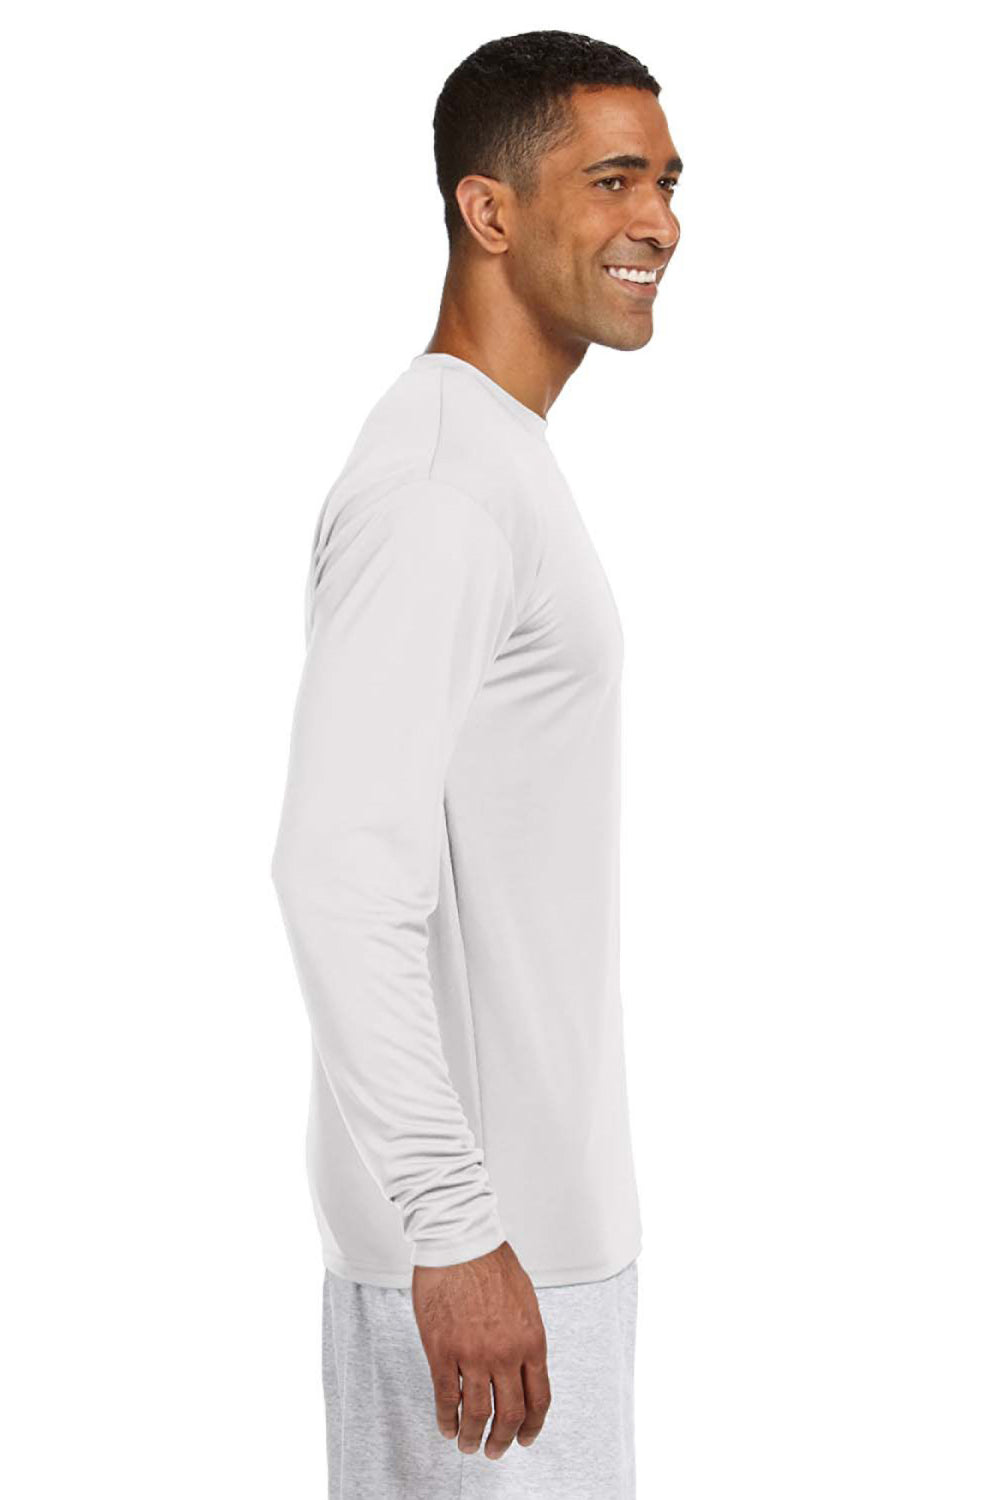 A4 N3165 Mens Cooling Performance Moisture Wicking Long Sleeve Crewneck T-Shirt White Side